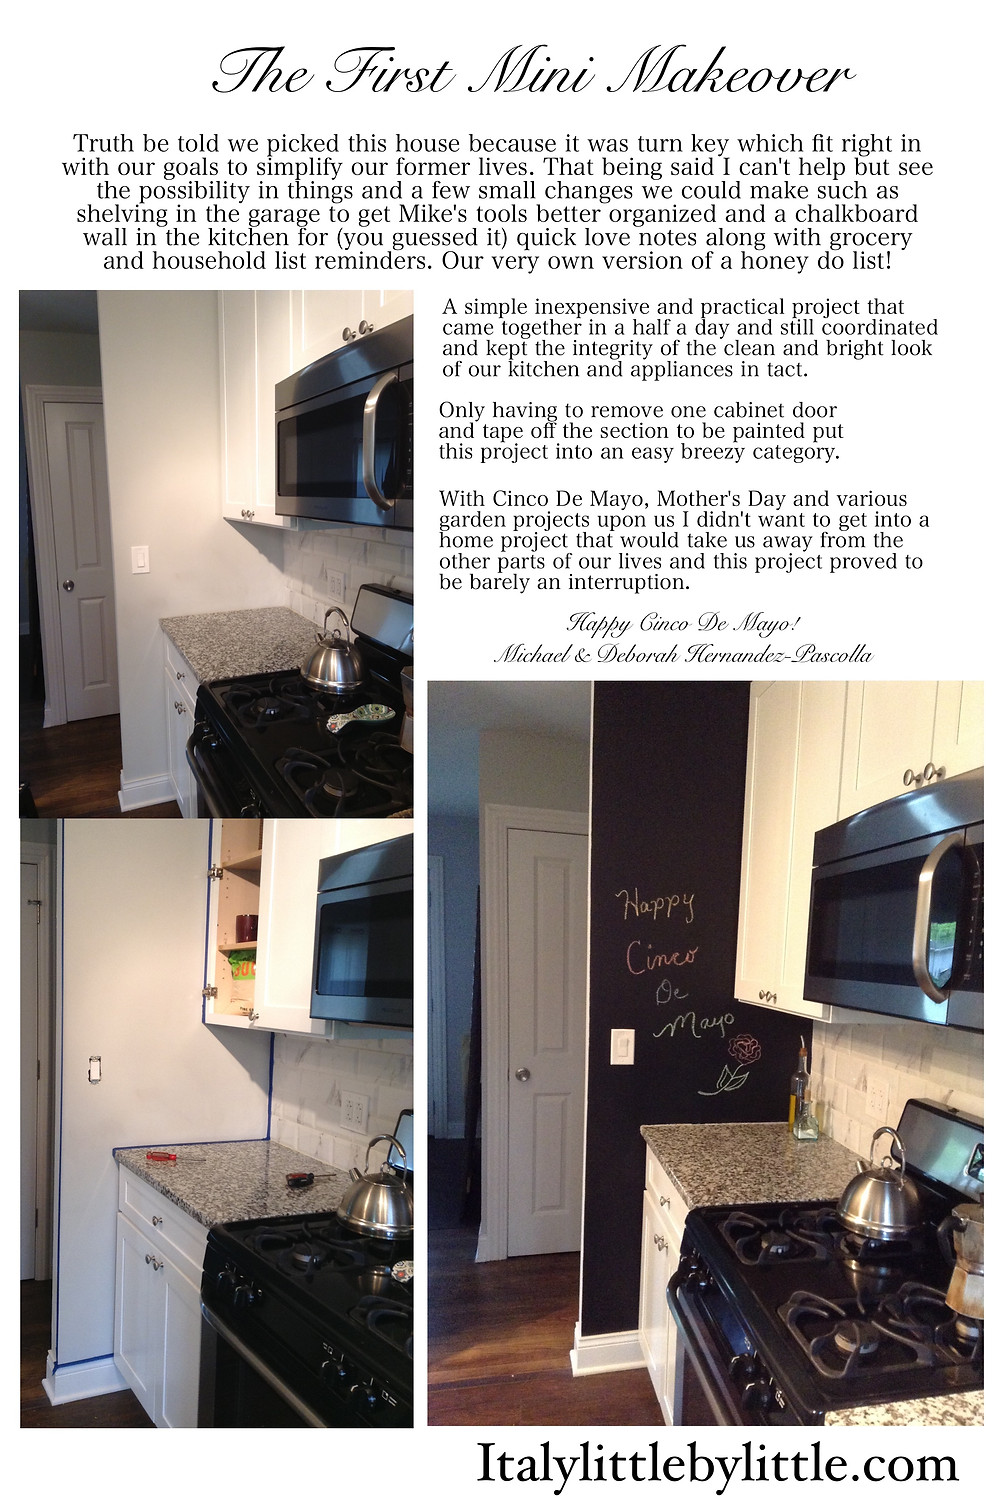 The First Mini Makeover - Simple DIY Project:  Adding a Chalkboard Wall to the Kitchen